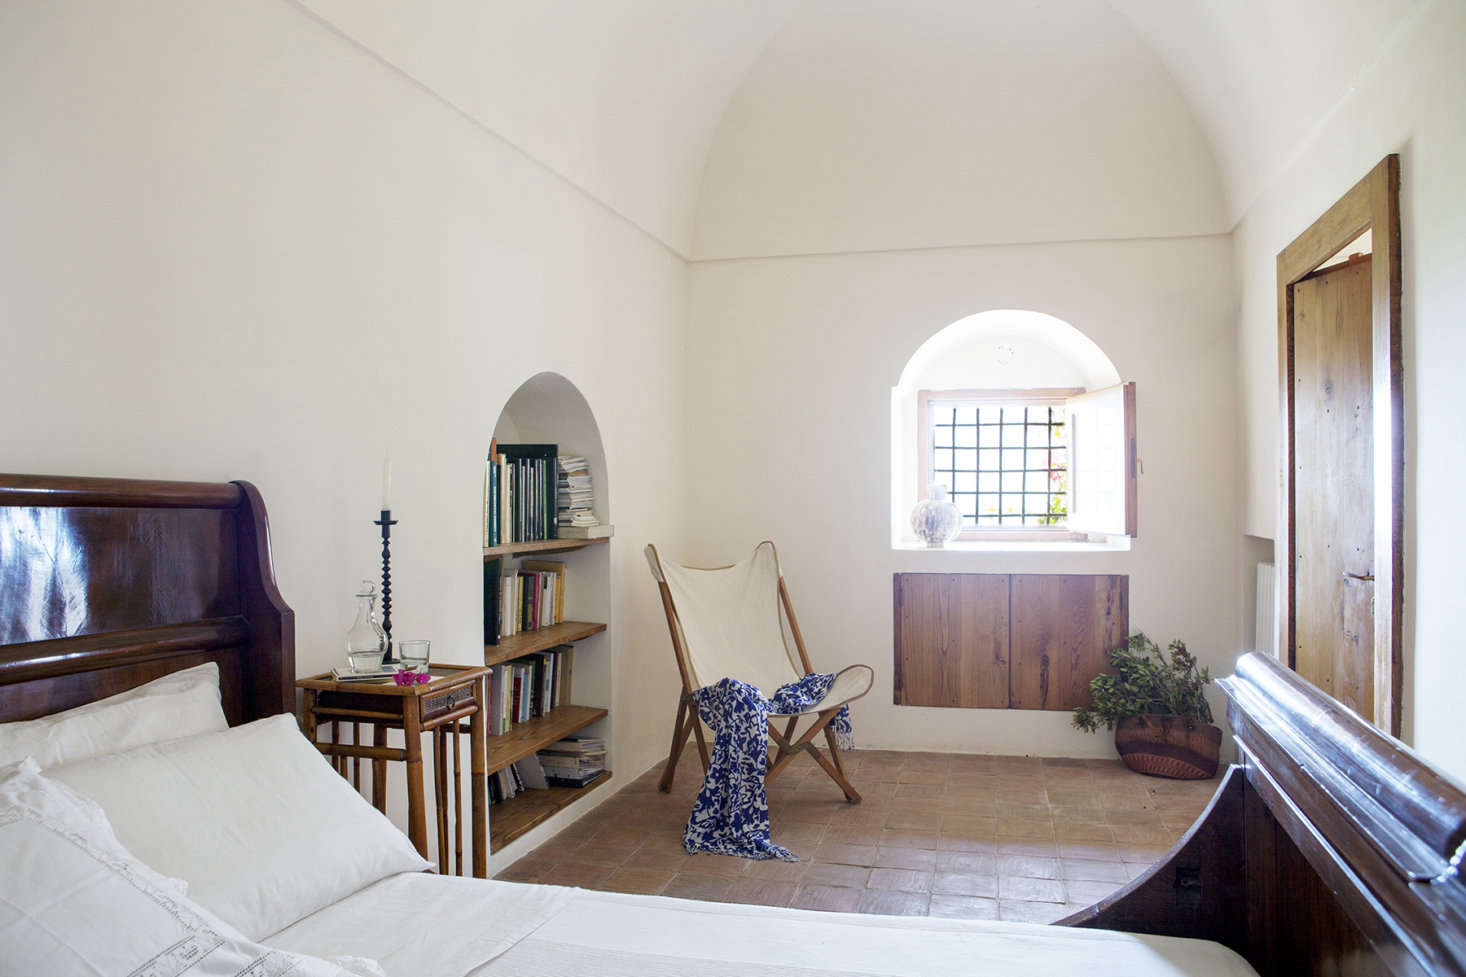 Each dammuso has alcoved windows and shelving.